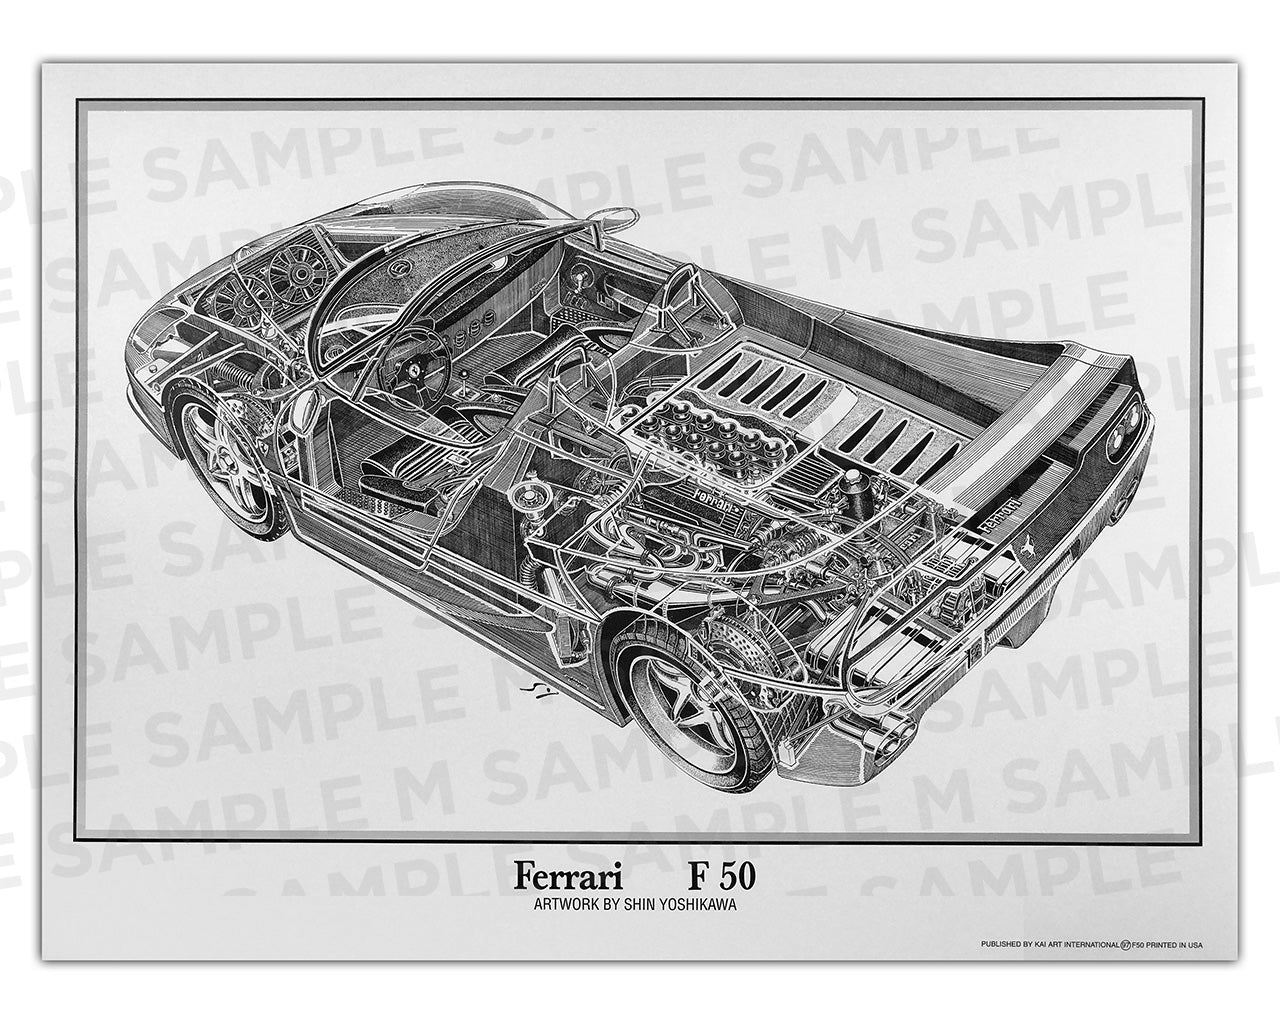 Authentic Ferrari F50 cutaway drawing print by renowned automotive artist Shin Yoshikawa